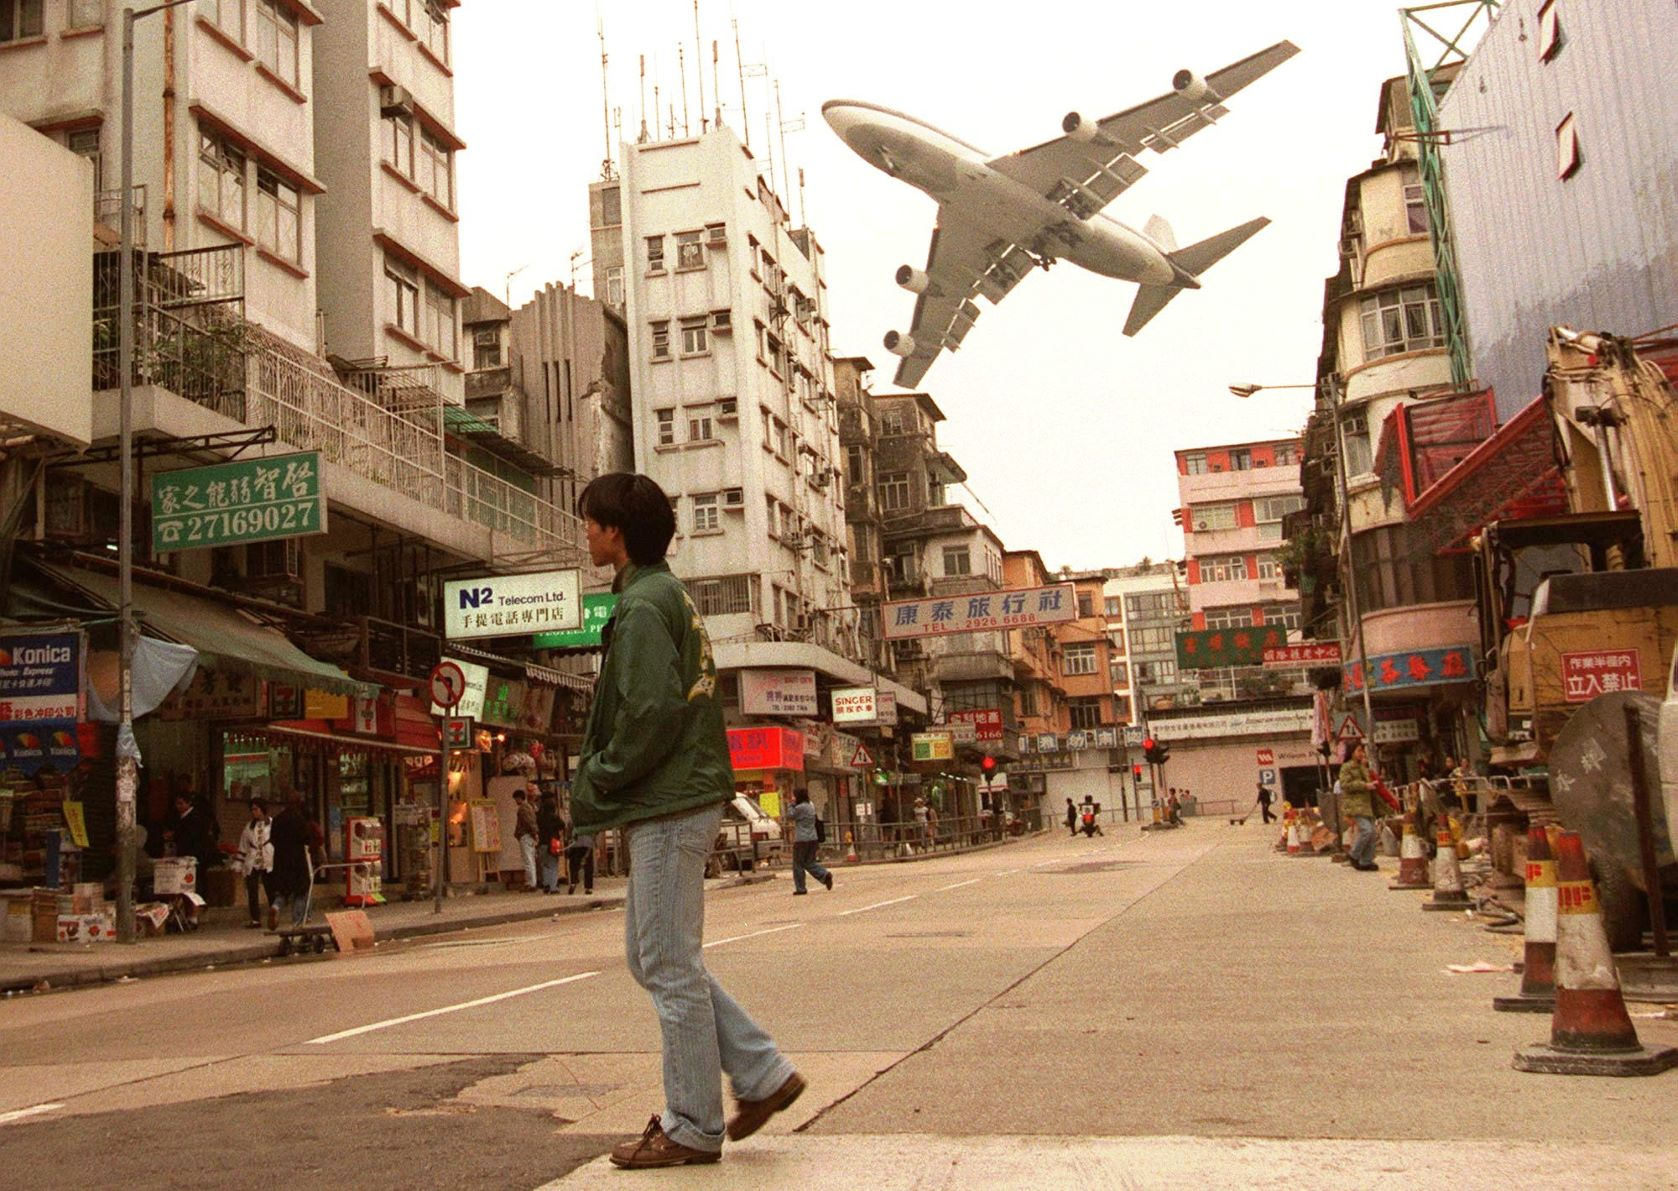 Before Hong Kong's old airport closed in 1998, it had just one runway, and airliners used to skim low over rooftops in hair-raising landings, 3 March 1998. (AP Photo/Vincent Yu)